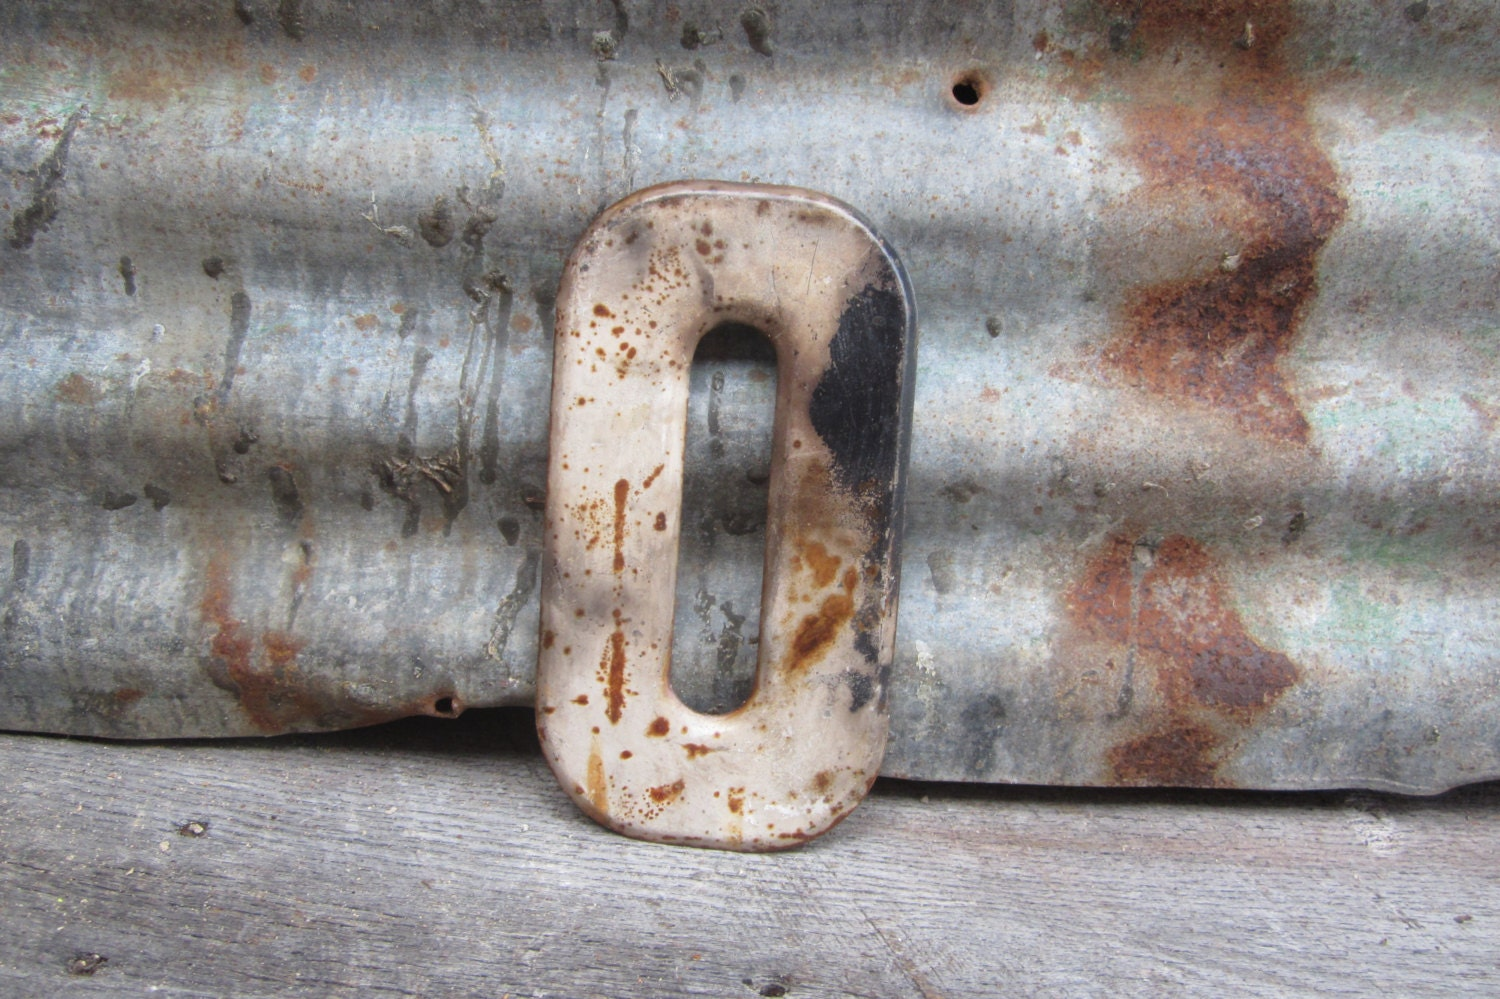 Vintage Metal Chippy Letter O Sign Aged & Rusted Old Marquee Metal Letter Rusty - TheOldTimeJunkShop